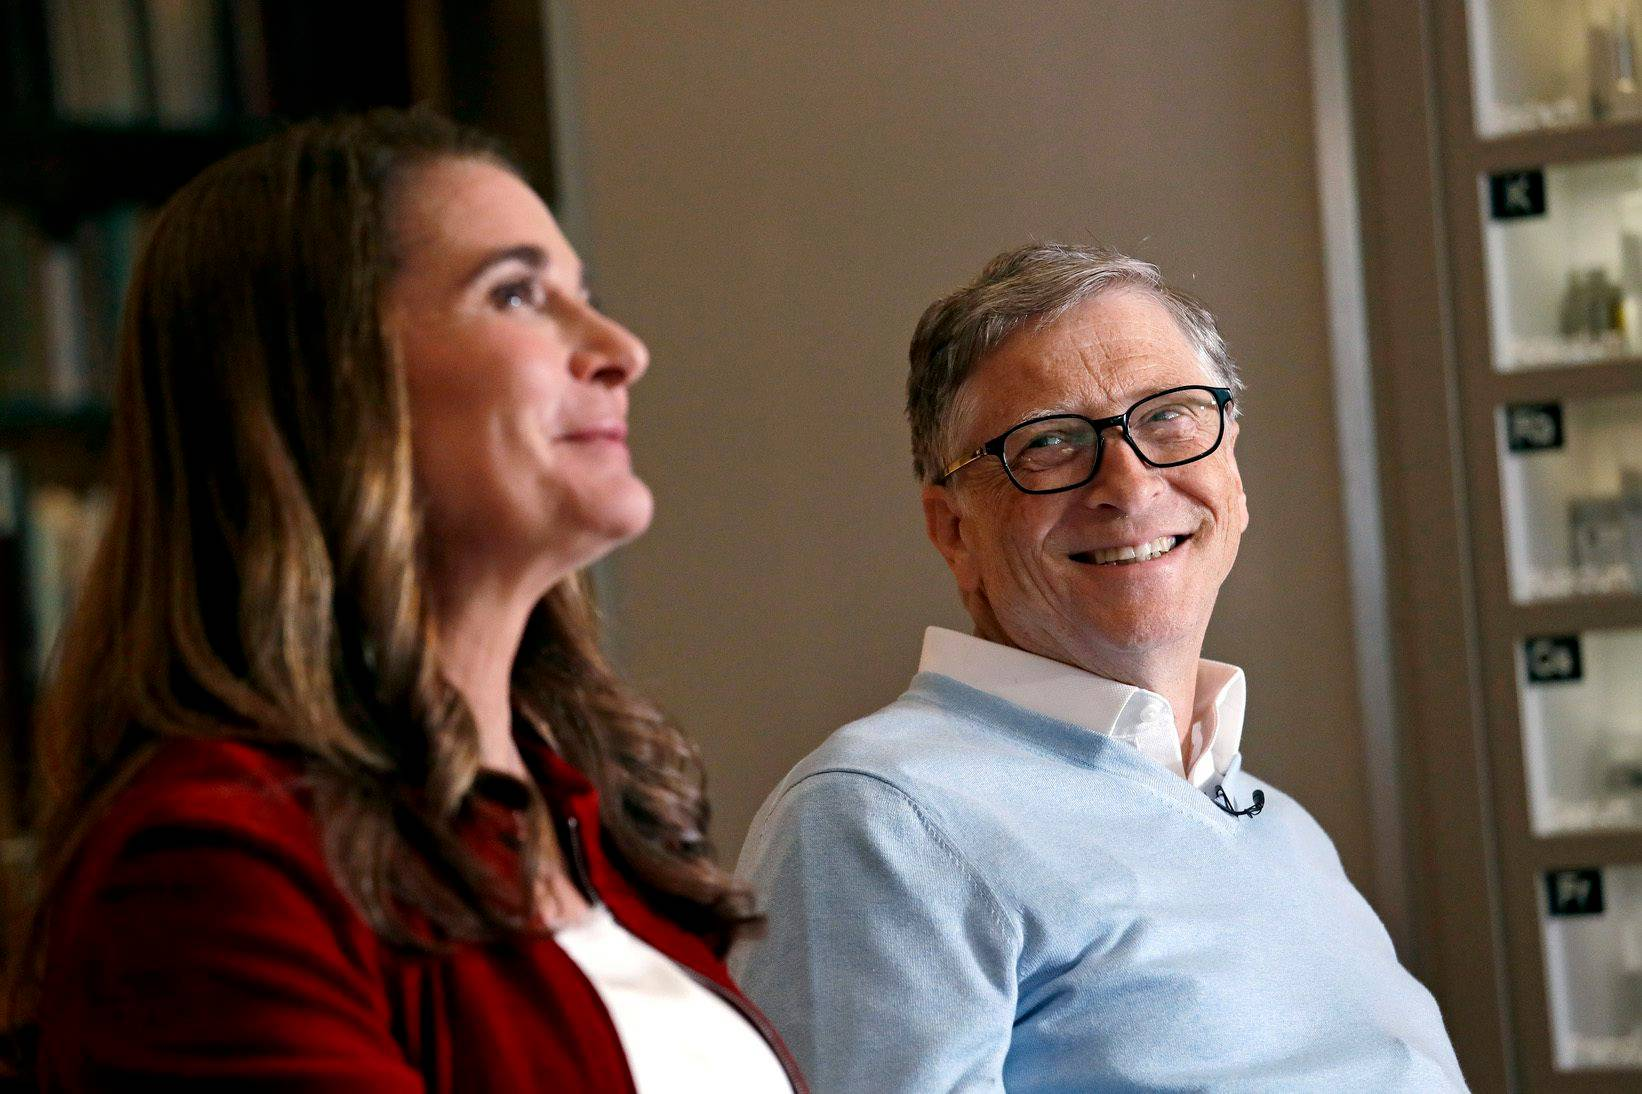 Bill and Melinda Gates To Divorce After 27 Years Together!